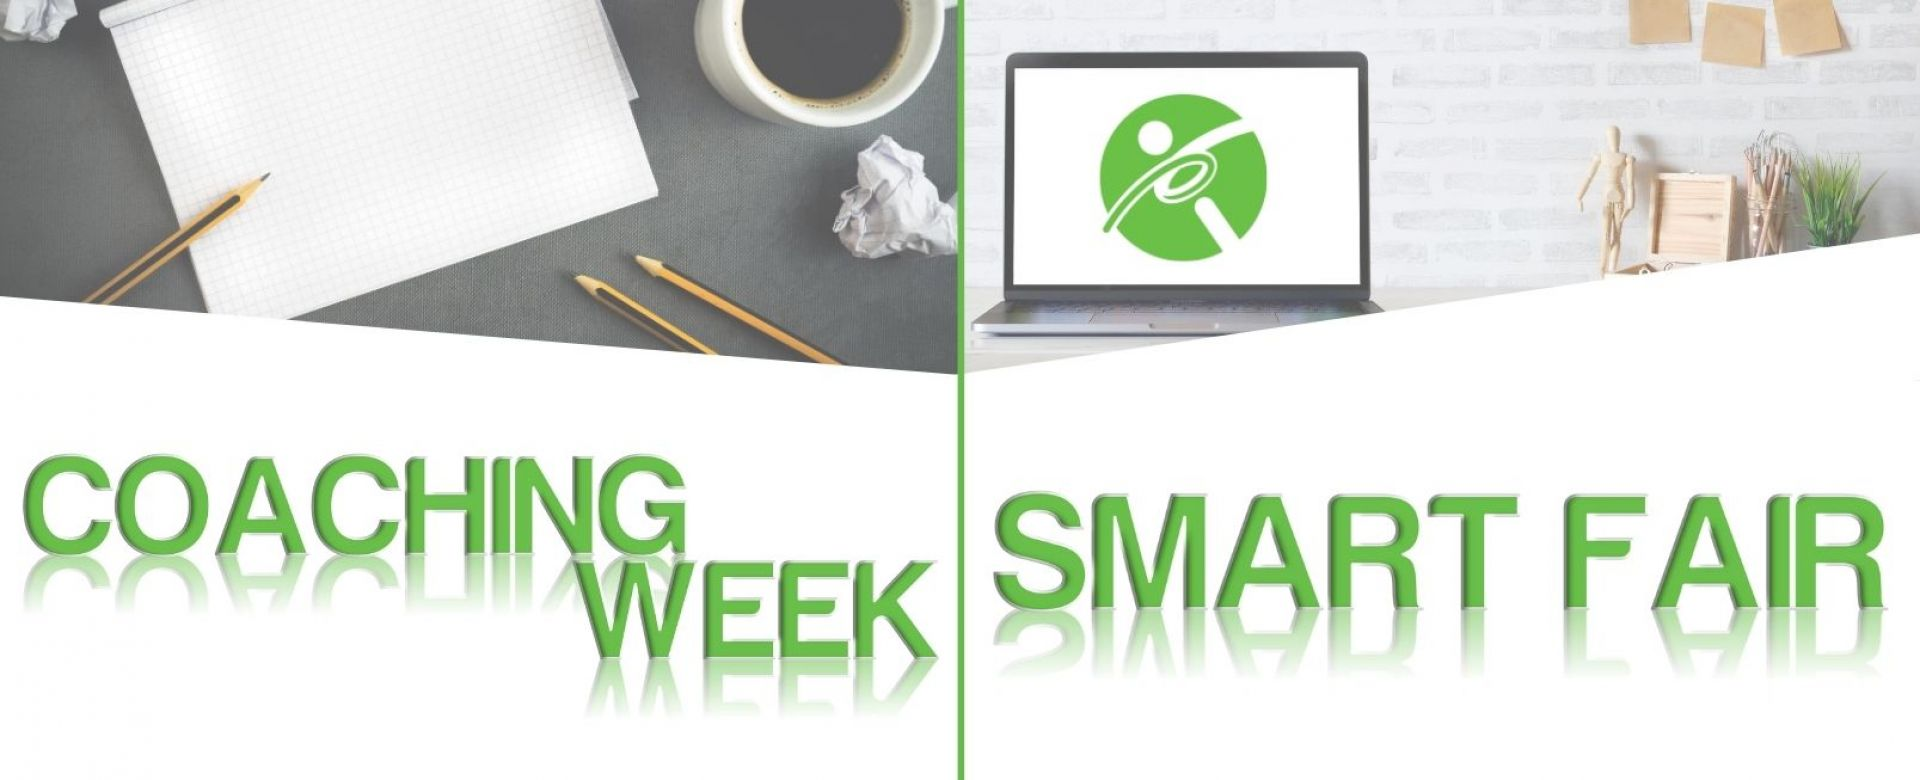 27.03.2020 - Coaching Week e Smart Fair raddoppiano!